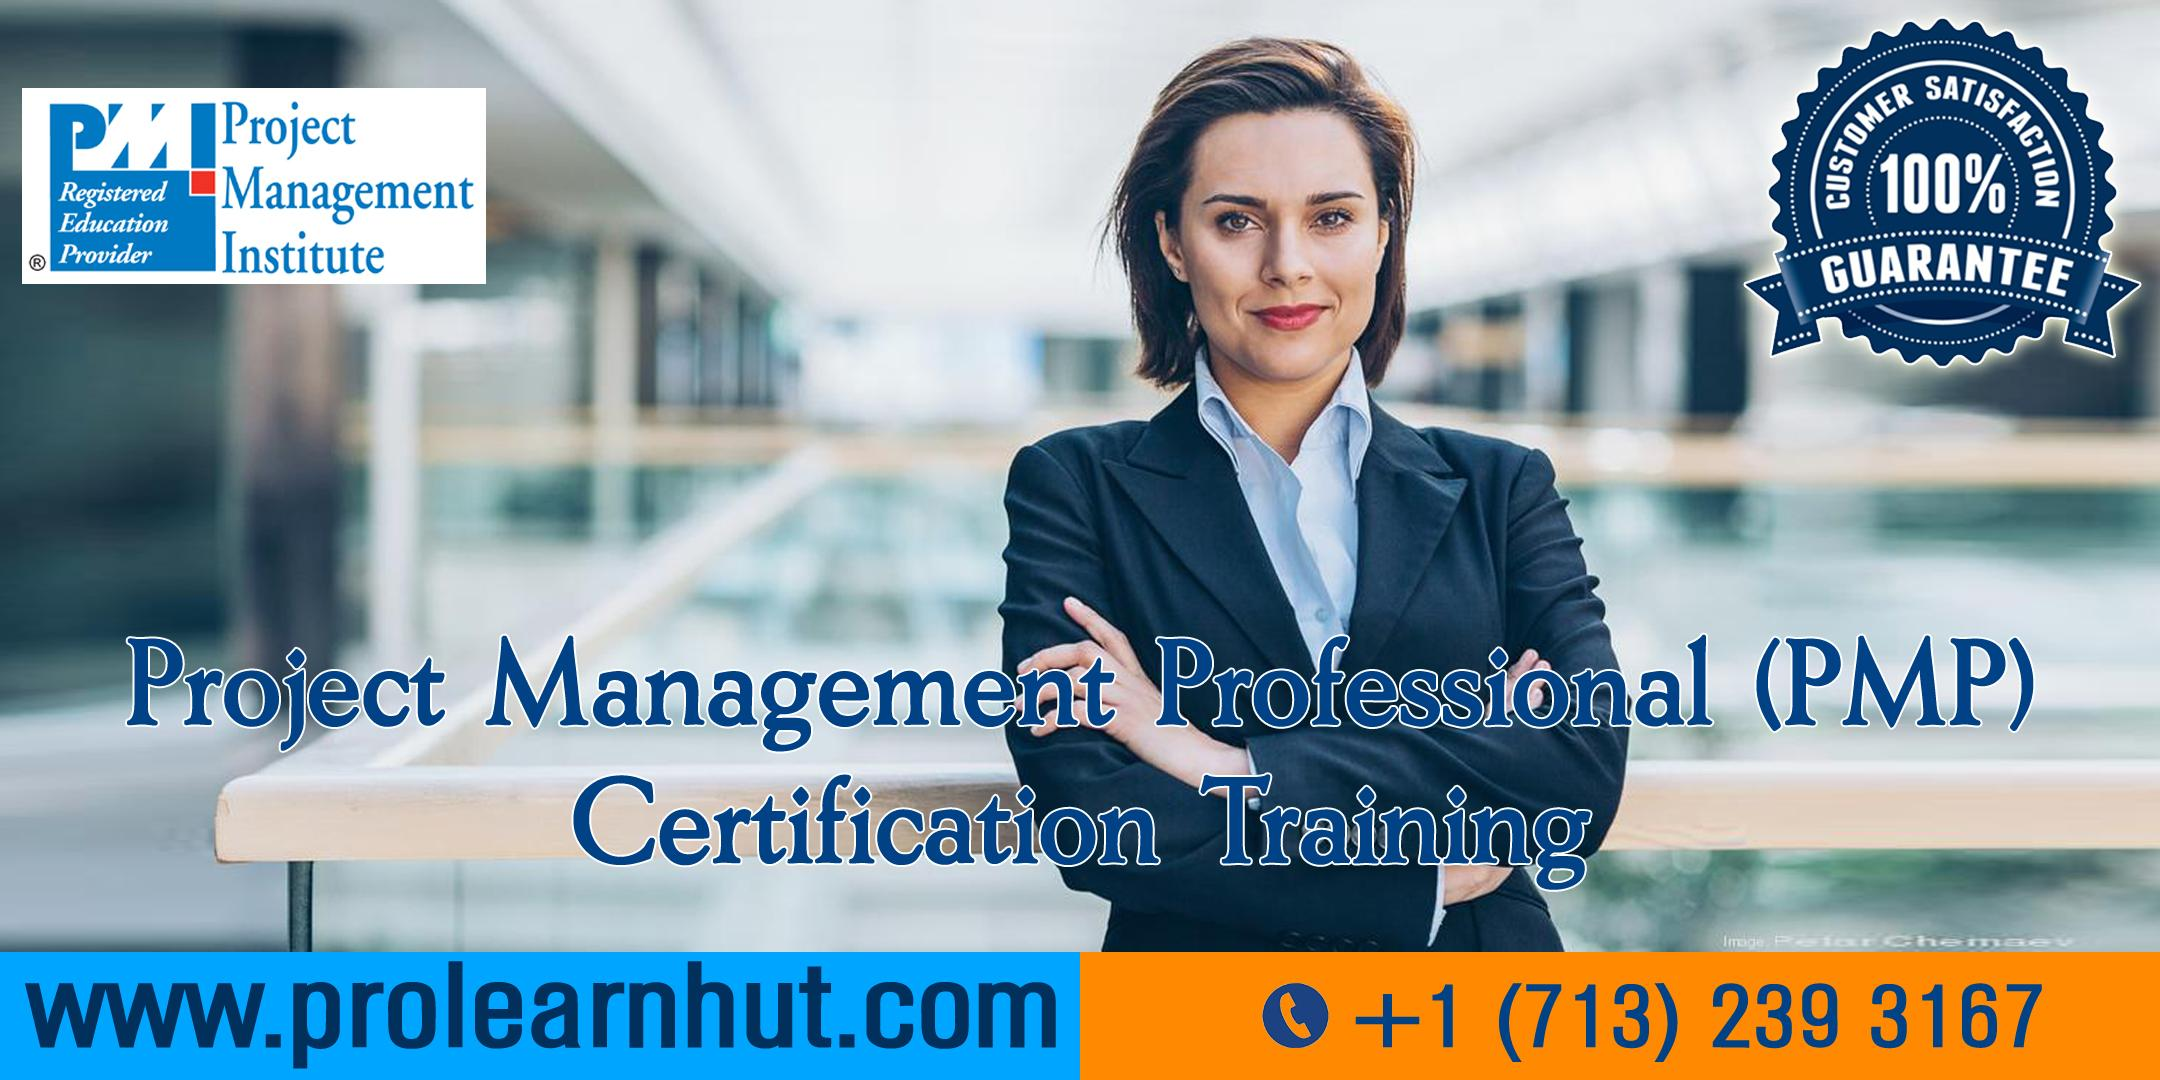 PMP Certification | Project Management Certification| PMP Training in Scottsdale, AZ | ProLearnHut